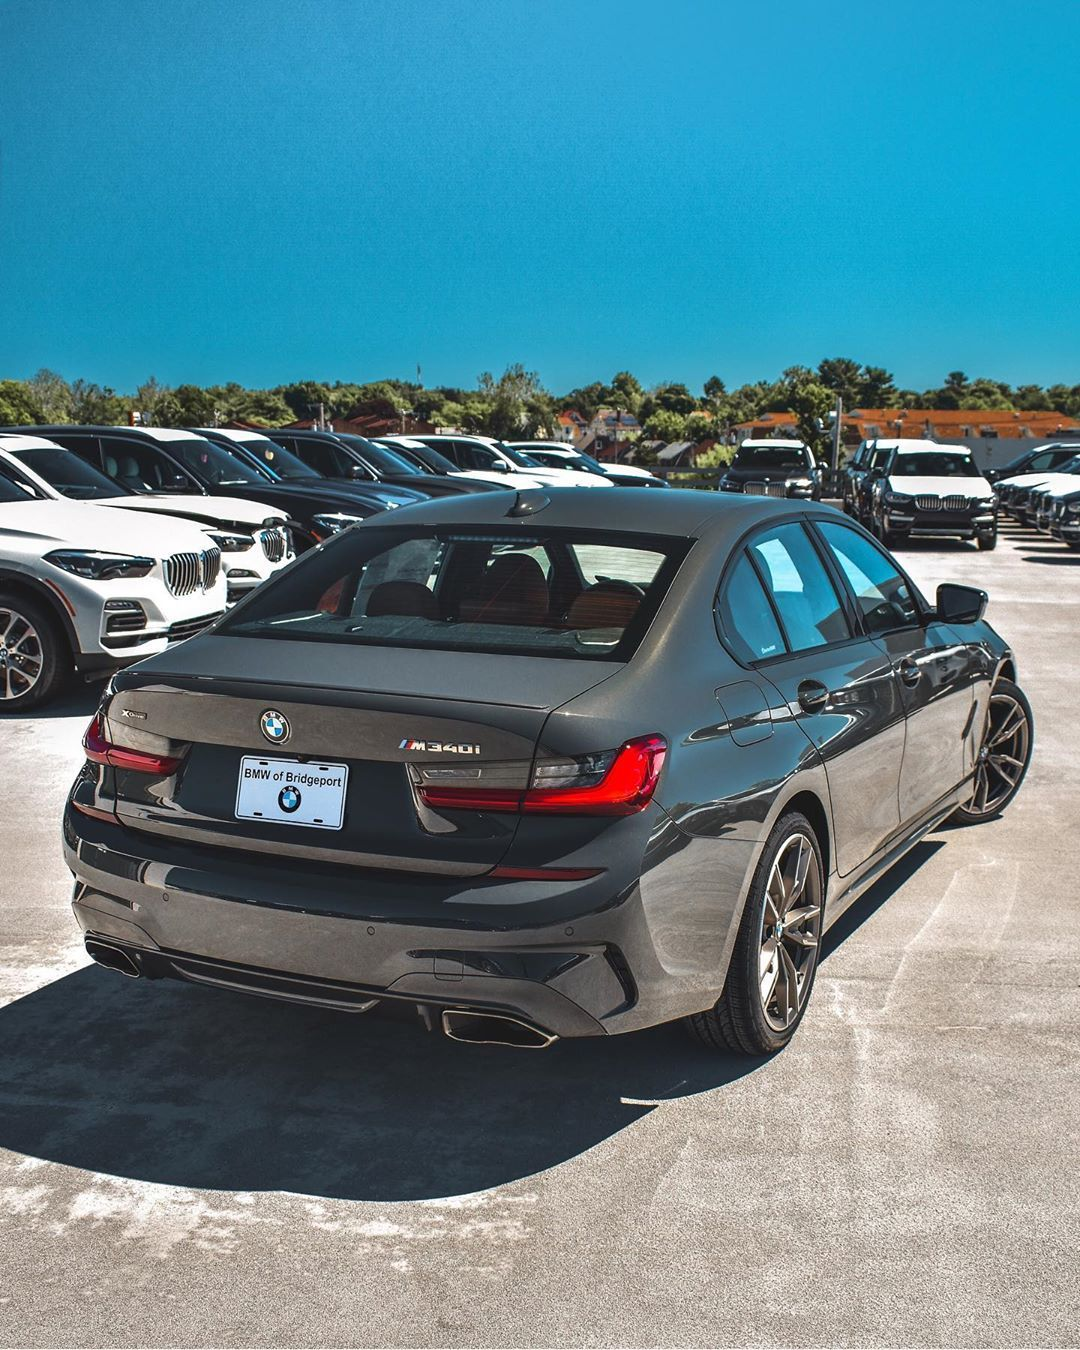 Bmw 2020: Our Tantalizing 2020 BMW M340i In Dravit Grey, This Time